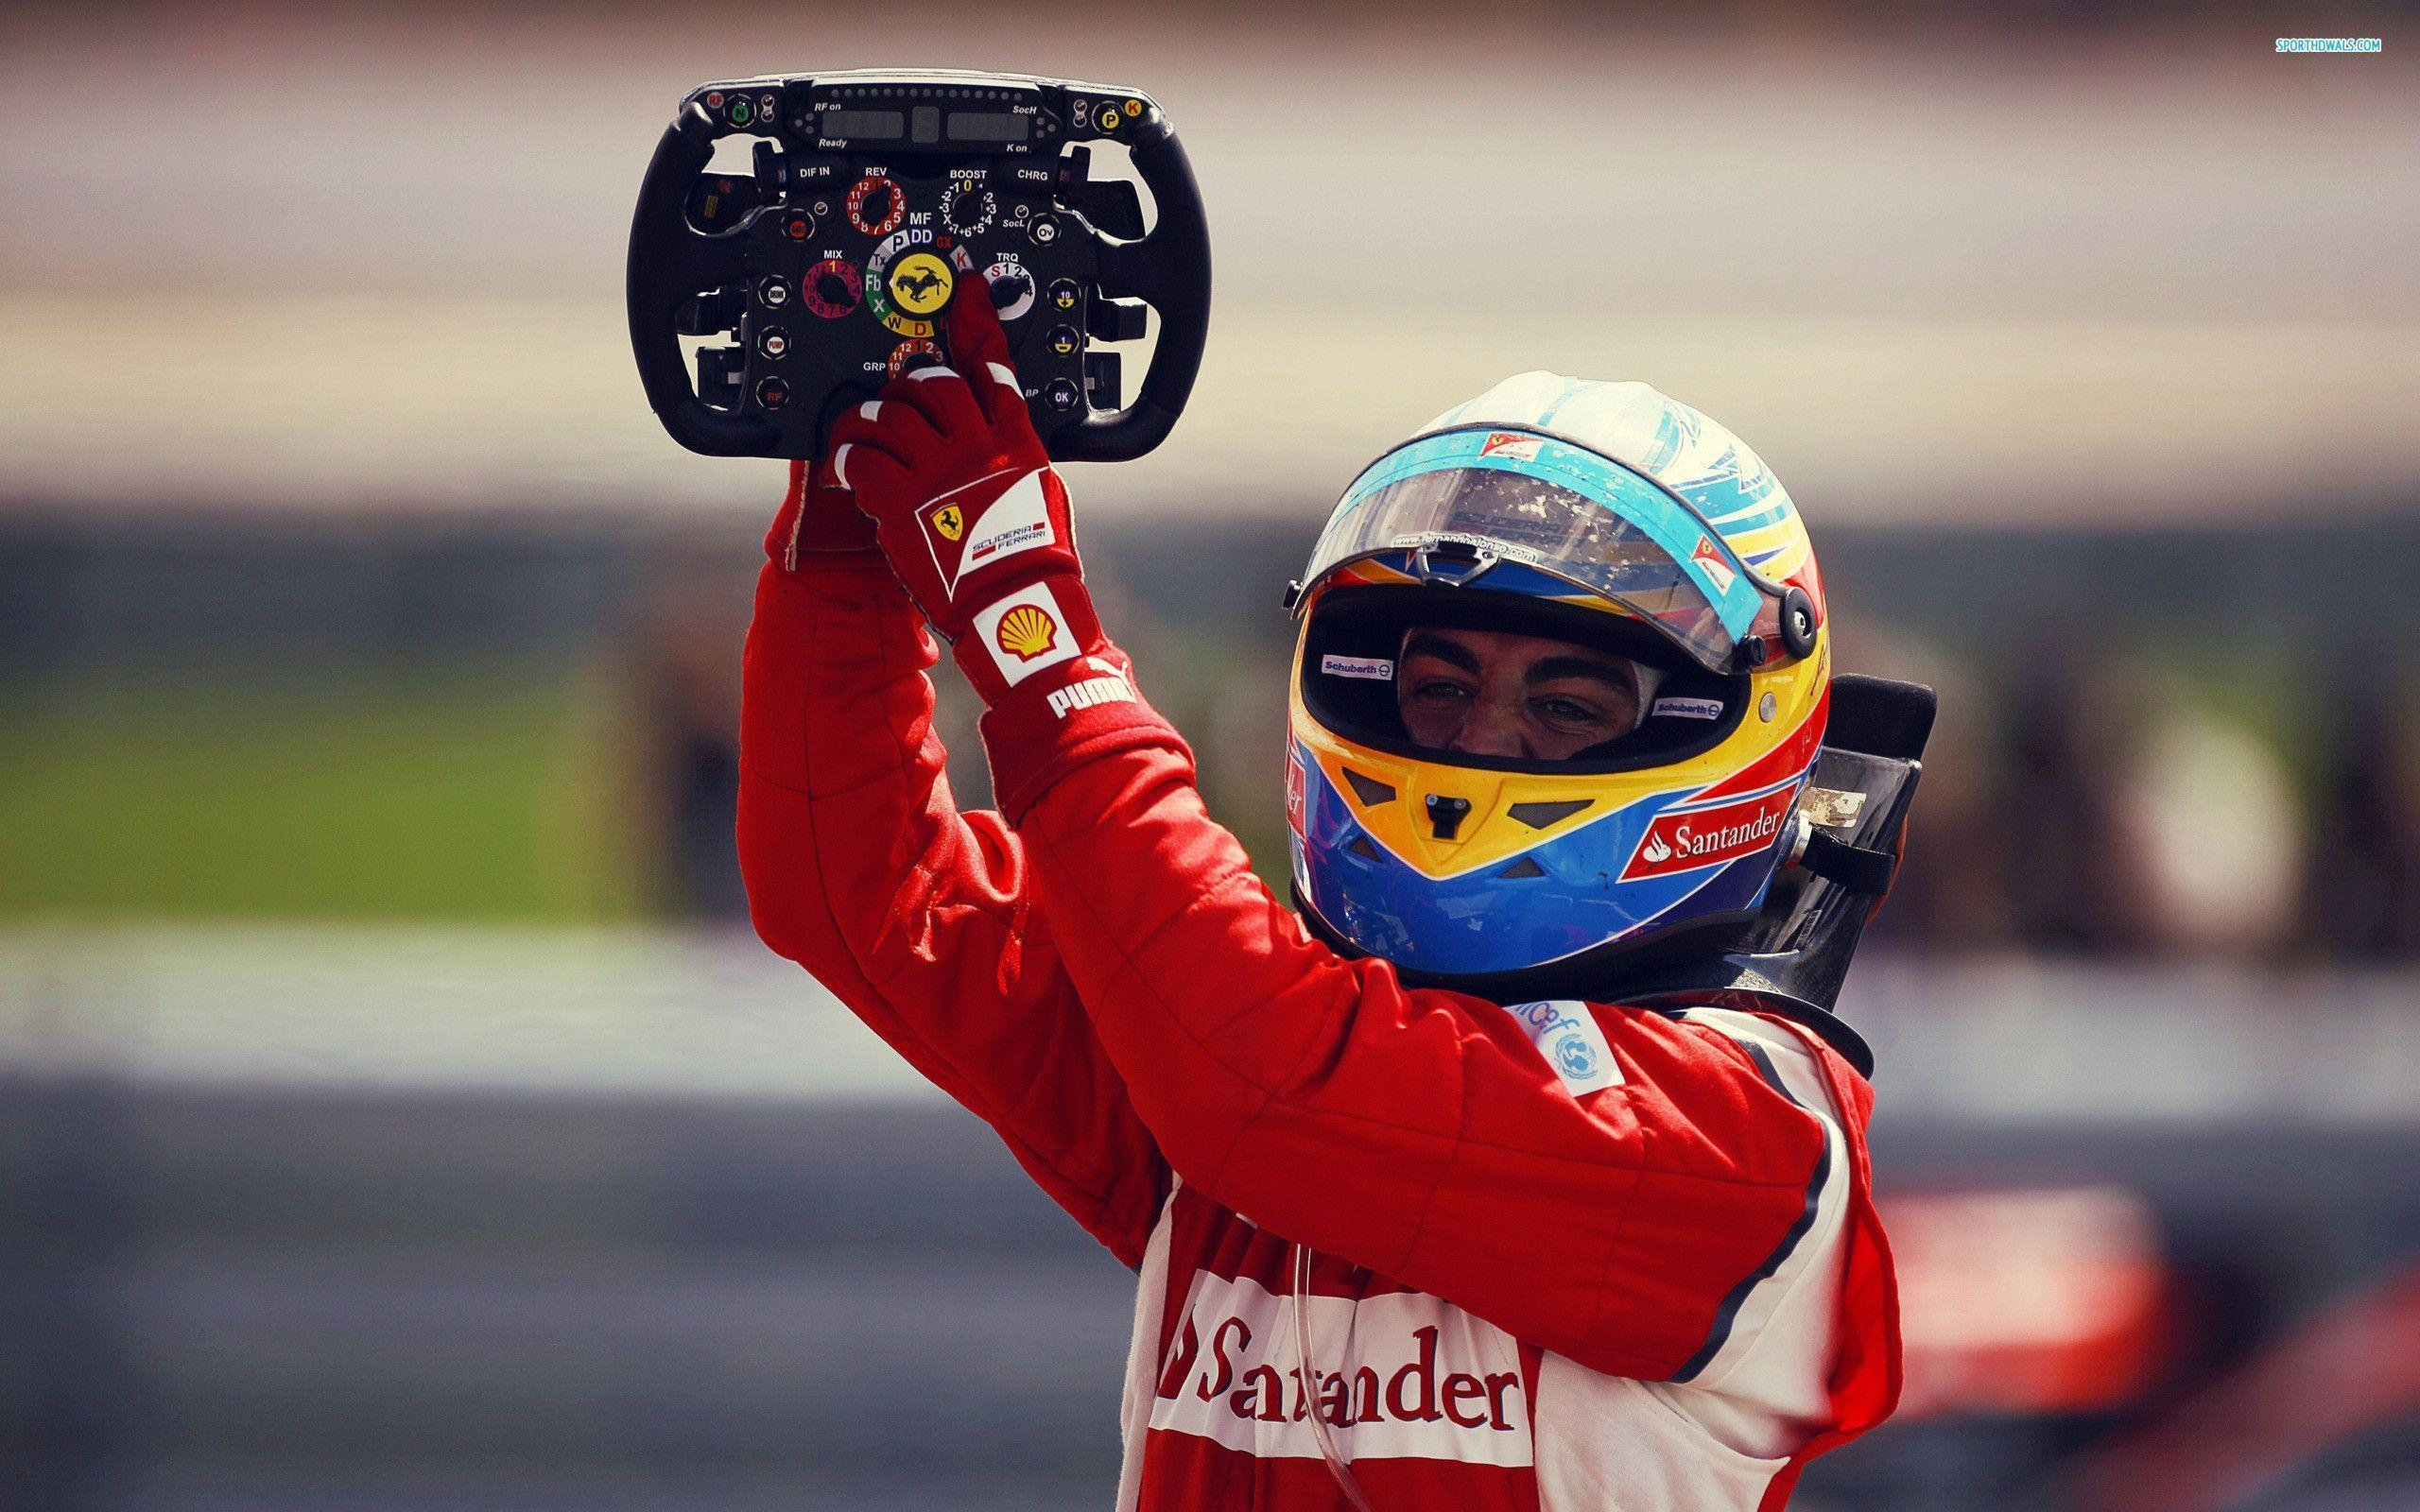 fernando alonso wallpapers and - photo #2